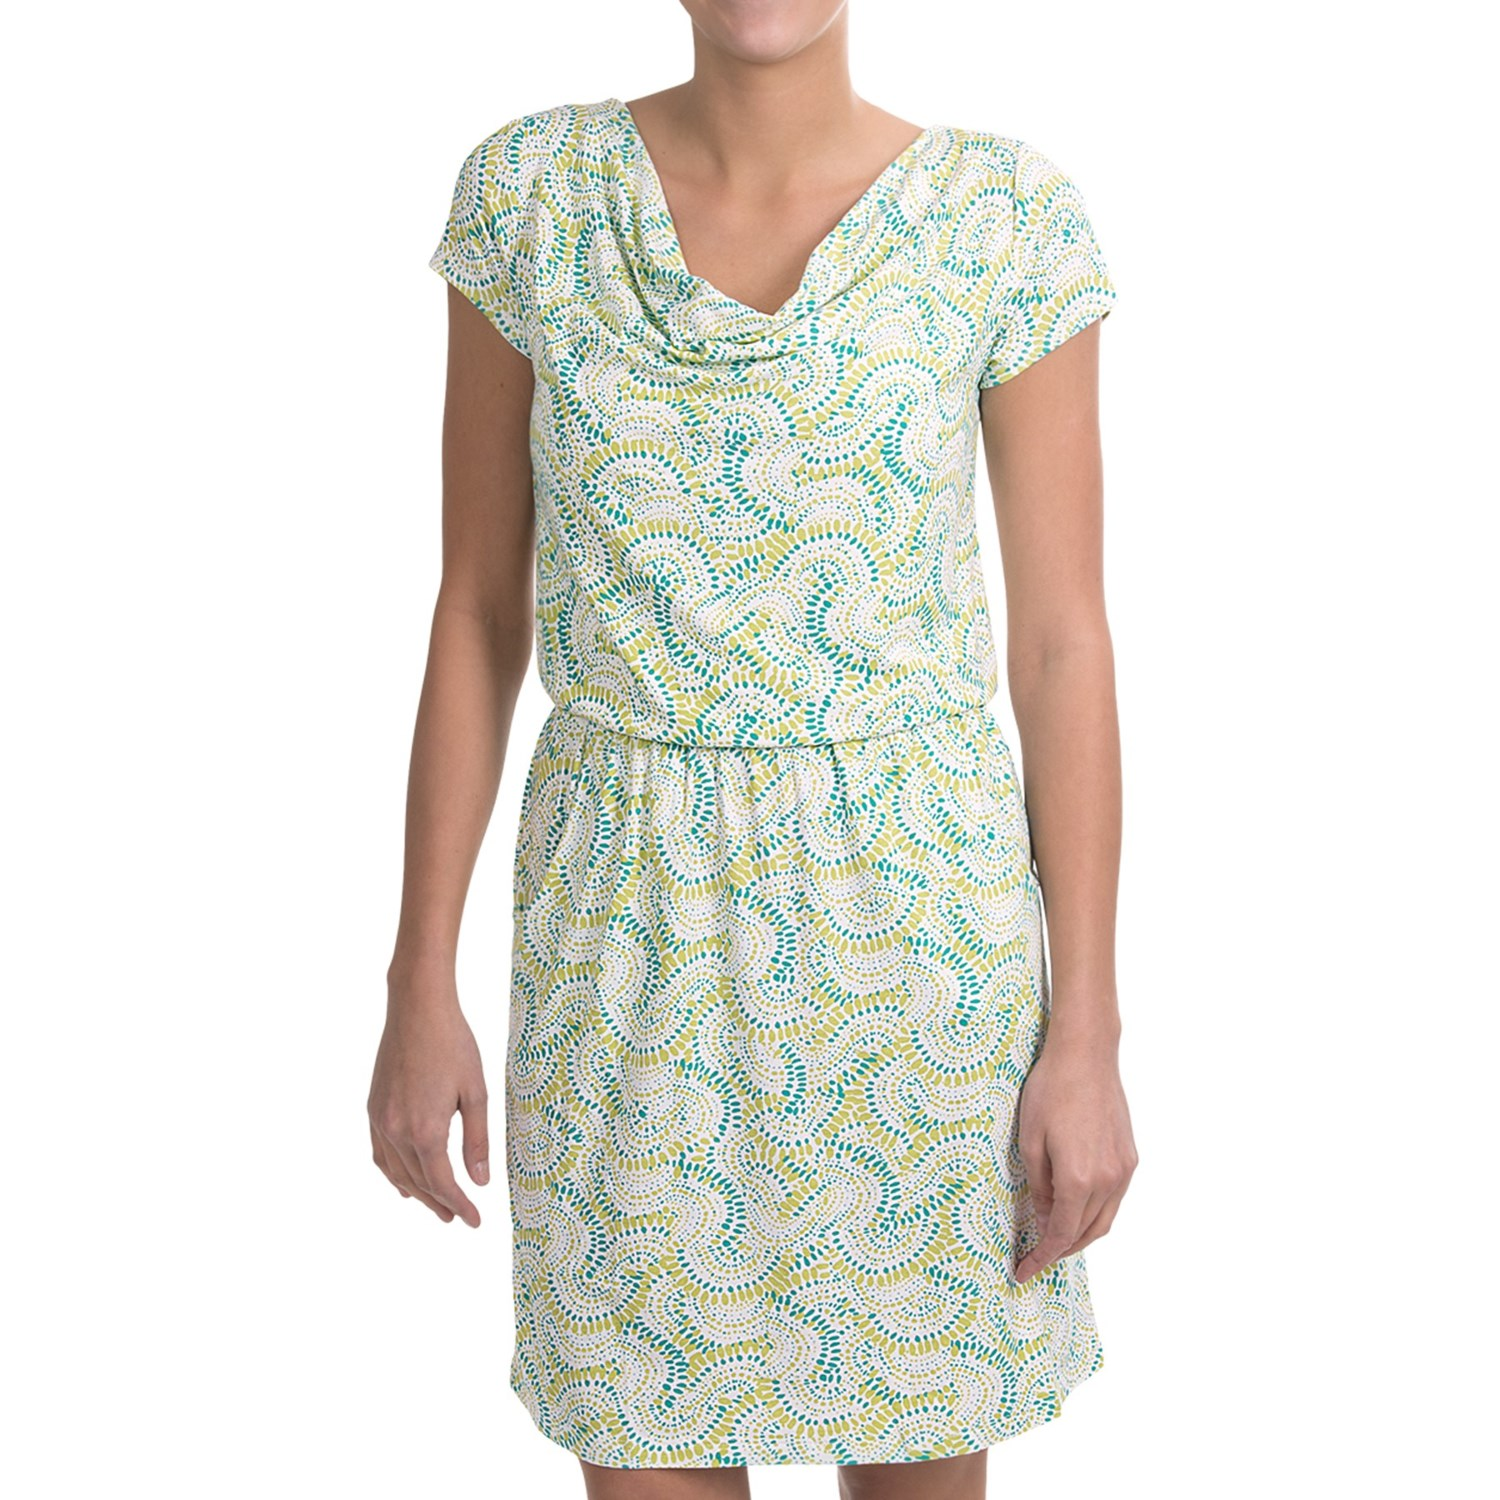 Woolrich Women's Rendezvous Dress at Amazon Women's Clothing store